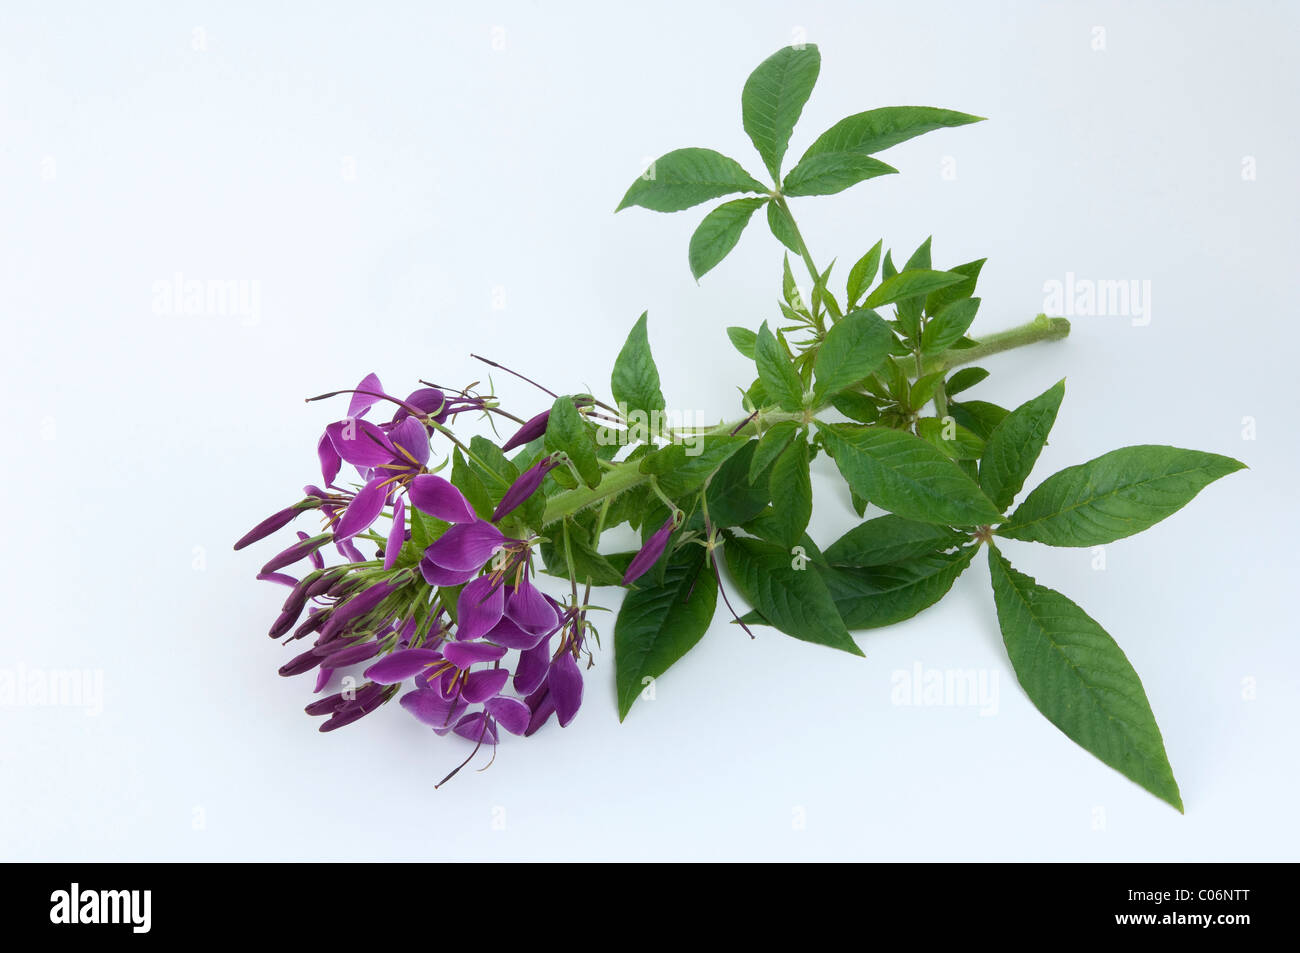 Spider Plant, Spider Flower (Cleome spinosa), flowering stalk. Studio picture against a white background. Stock Photo